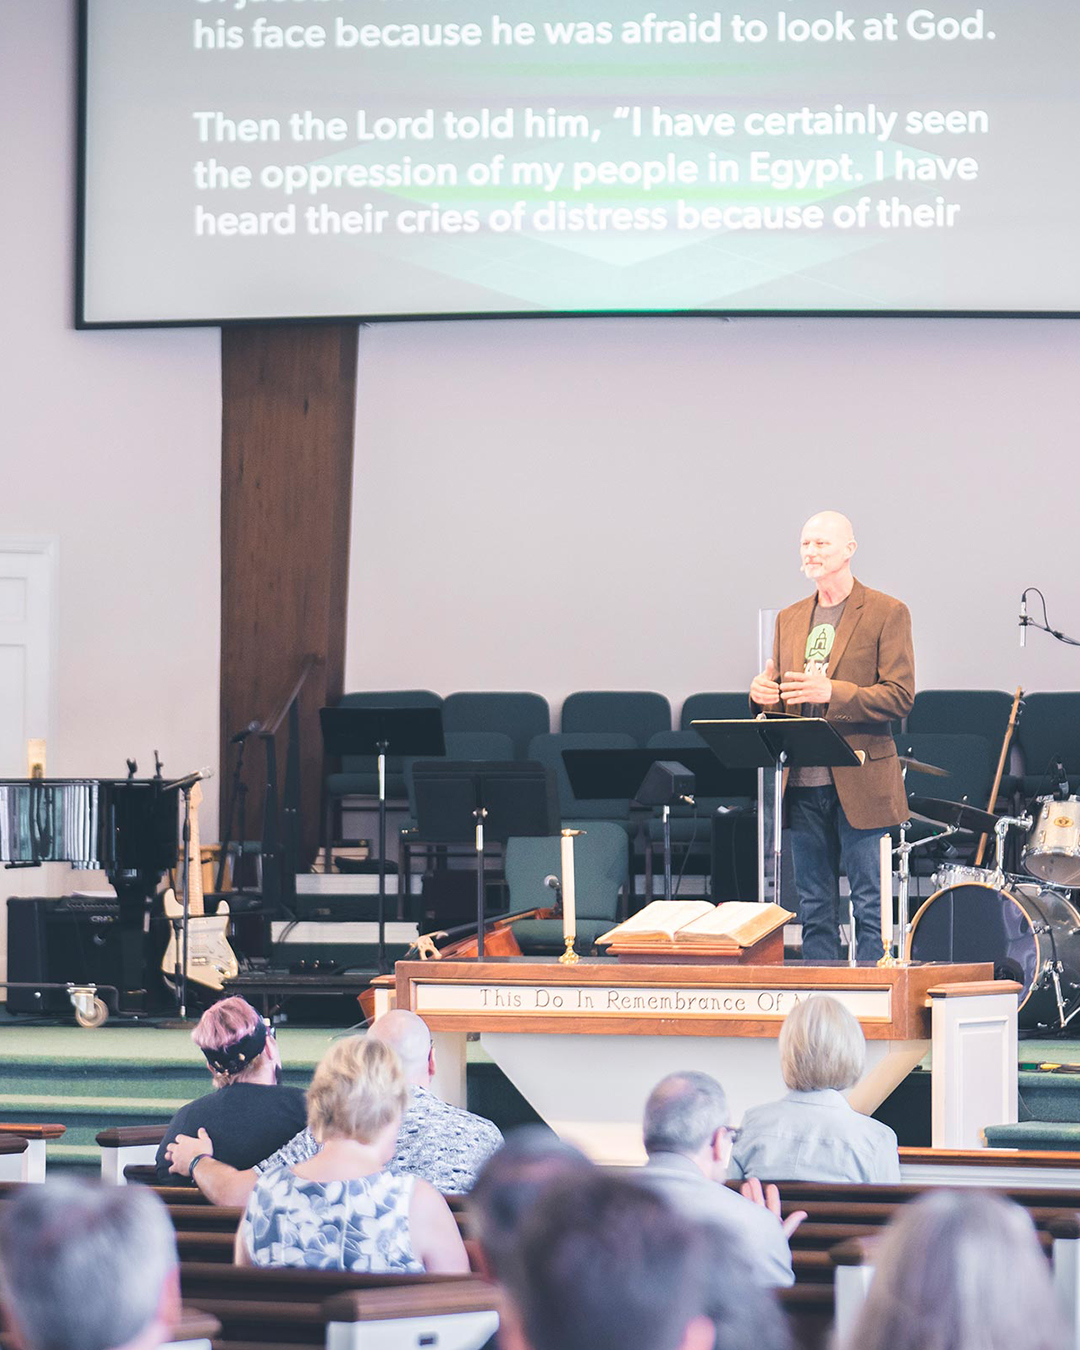 Pastor Roger Haskins at Pearce Church in Rochester, NY